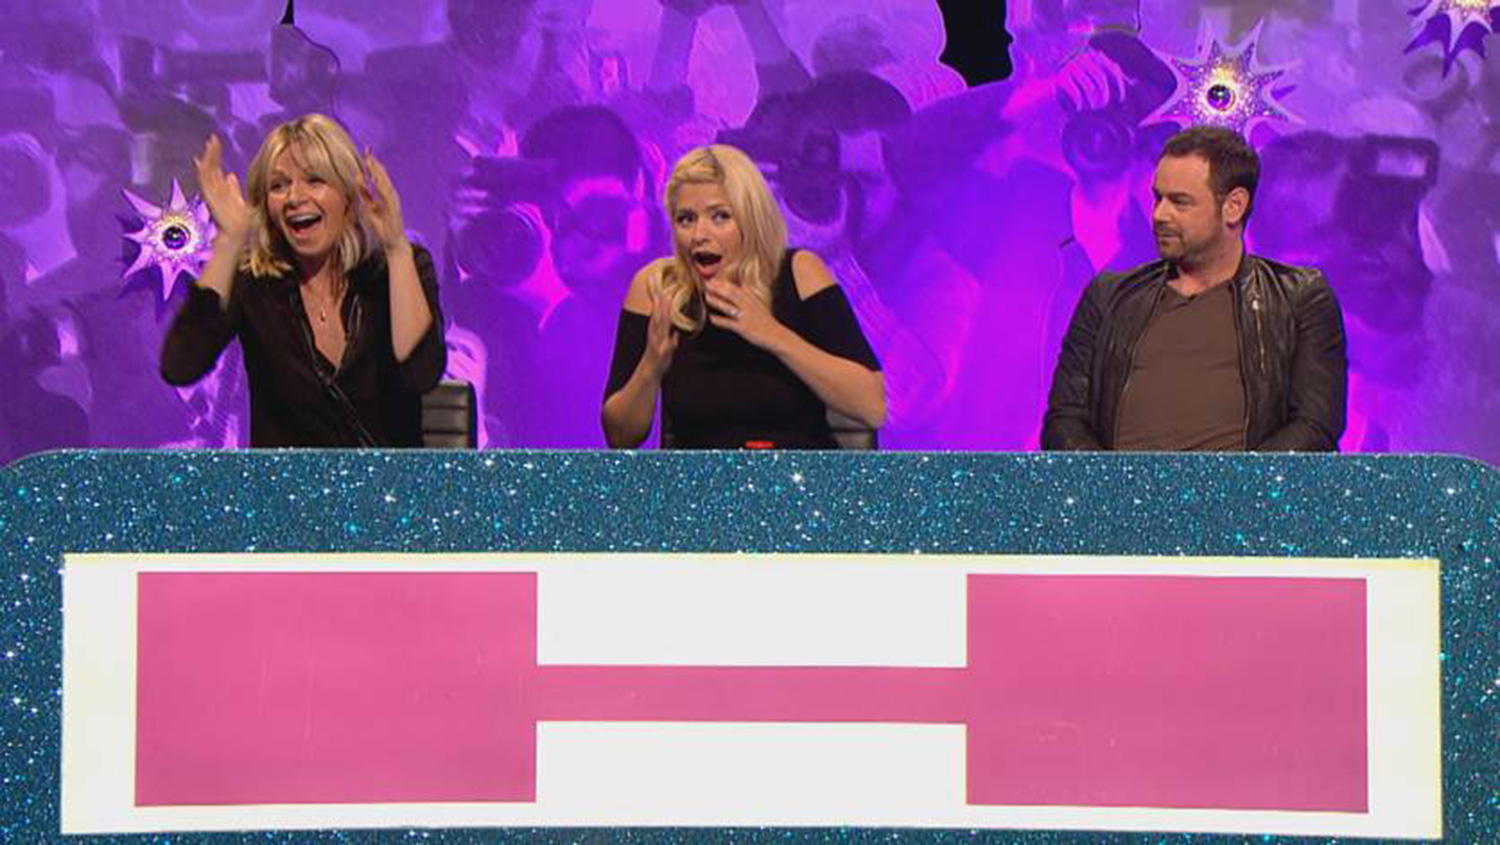 danny dyer Danny Dyer Just Made A Ballsy Move In Front Of Holly Willoughby On TV